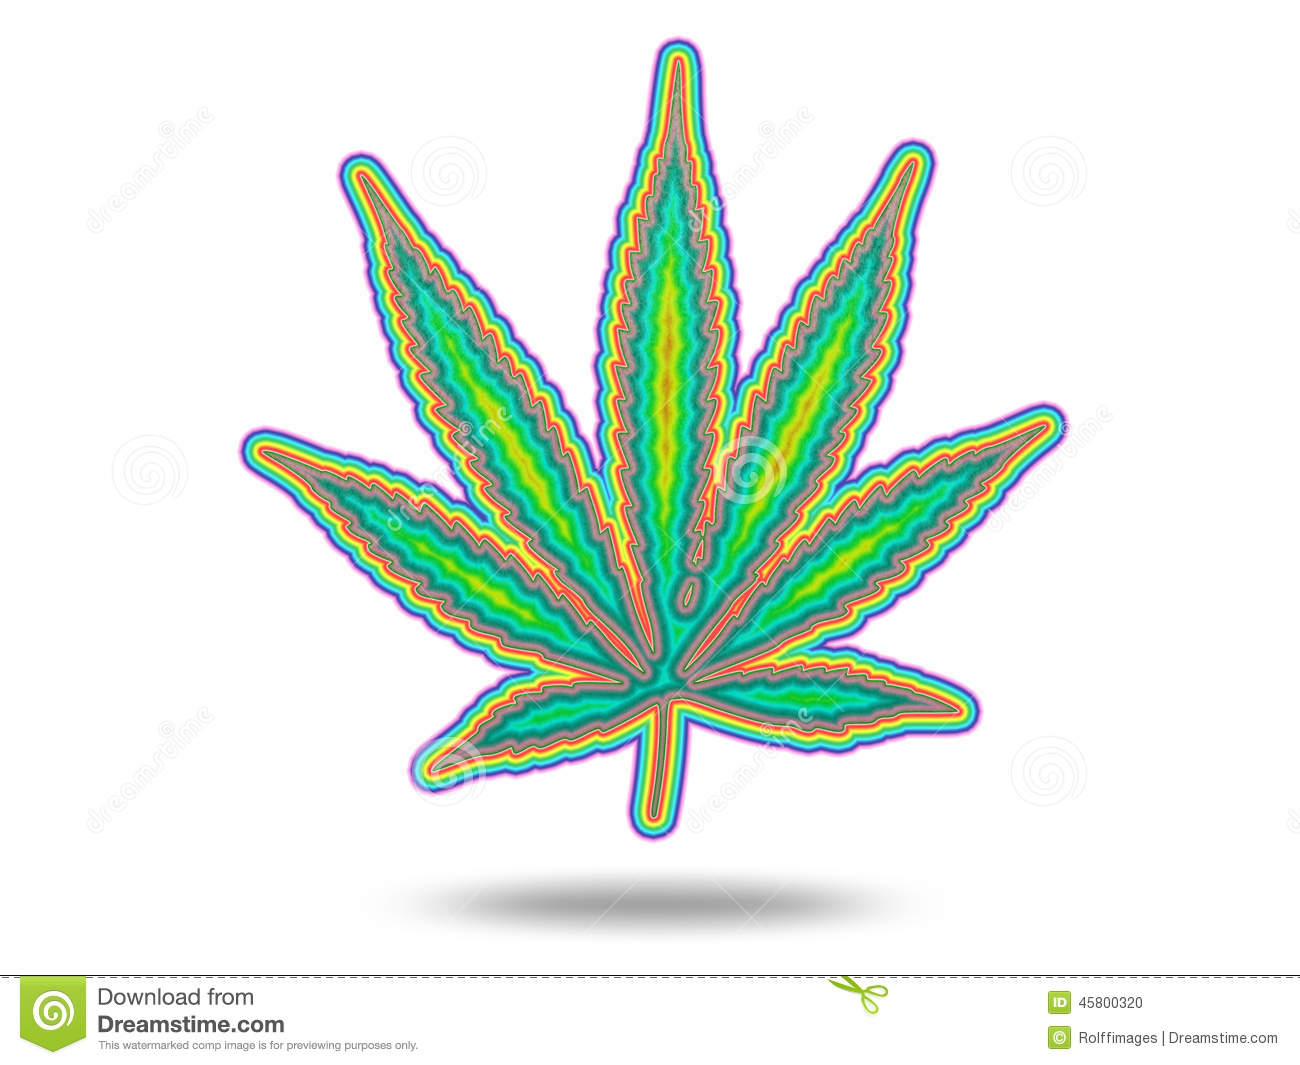 Feuille de cannabis avec le spectre illustration stock illustration du dessin fantastique - Feuille cannabis dessin ...